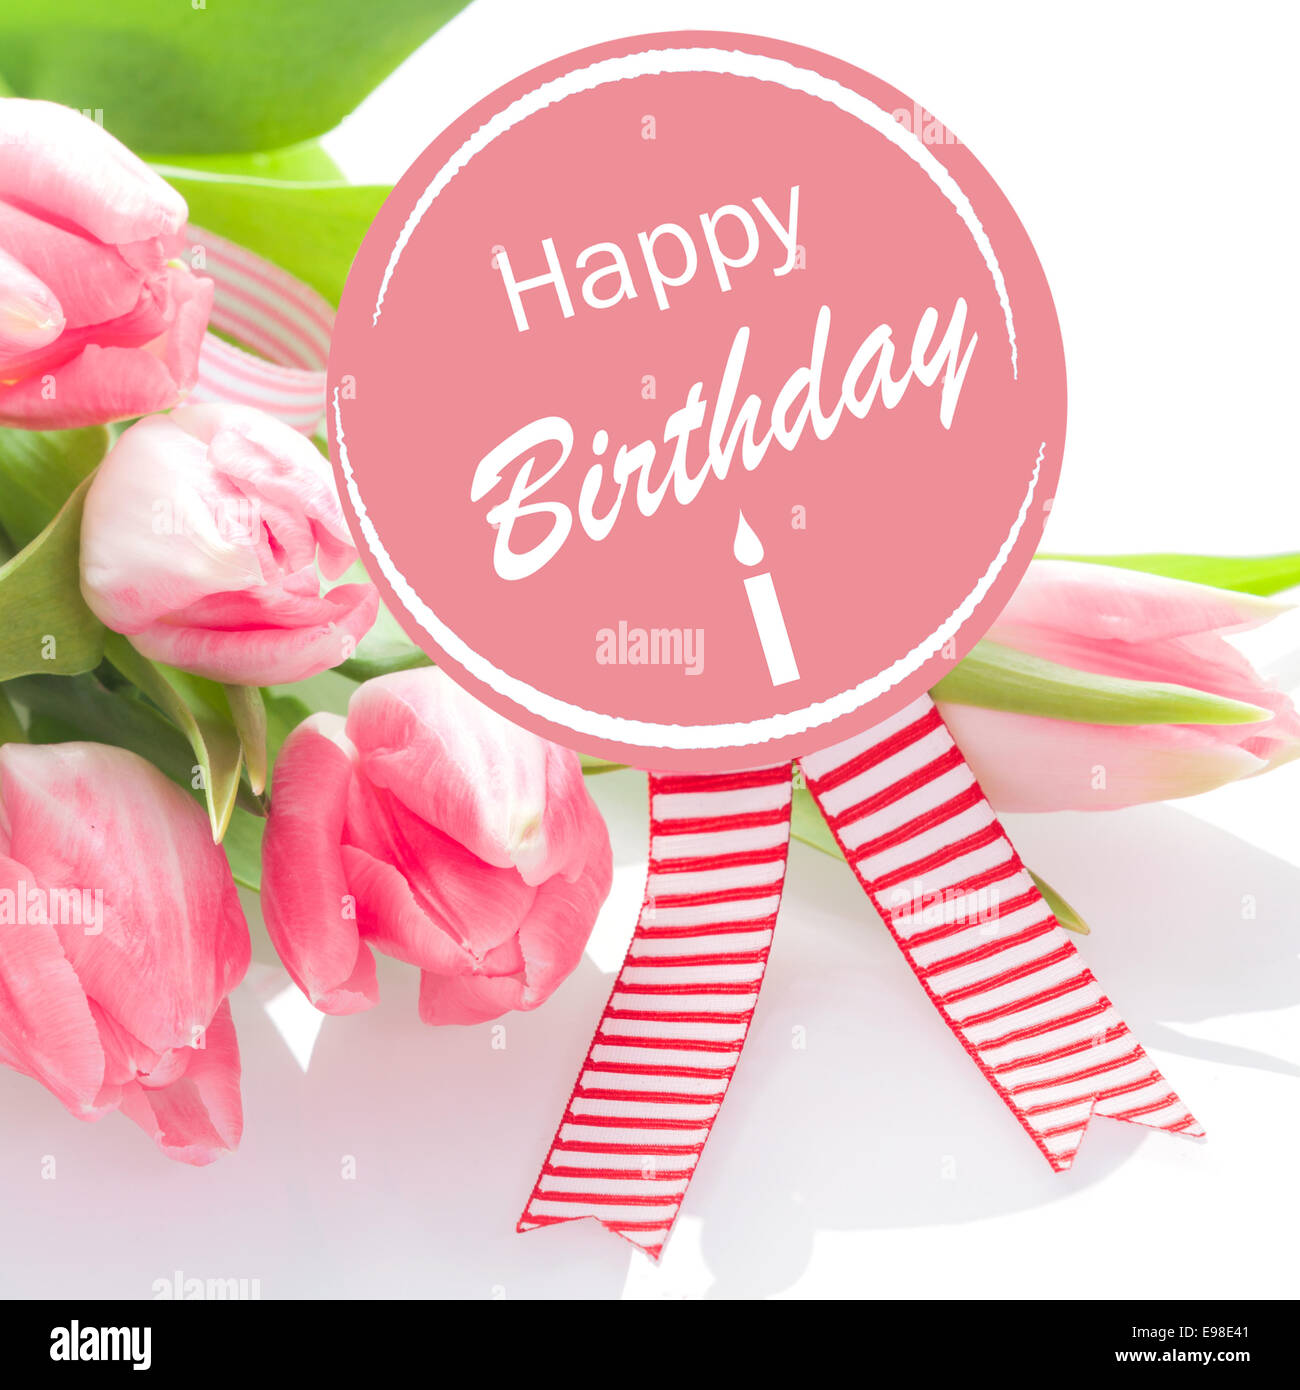 Happy Birthday Wishes On A Round Pink Rosette With Colourful Striped